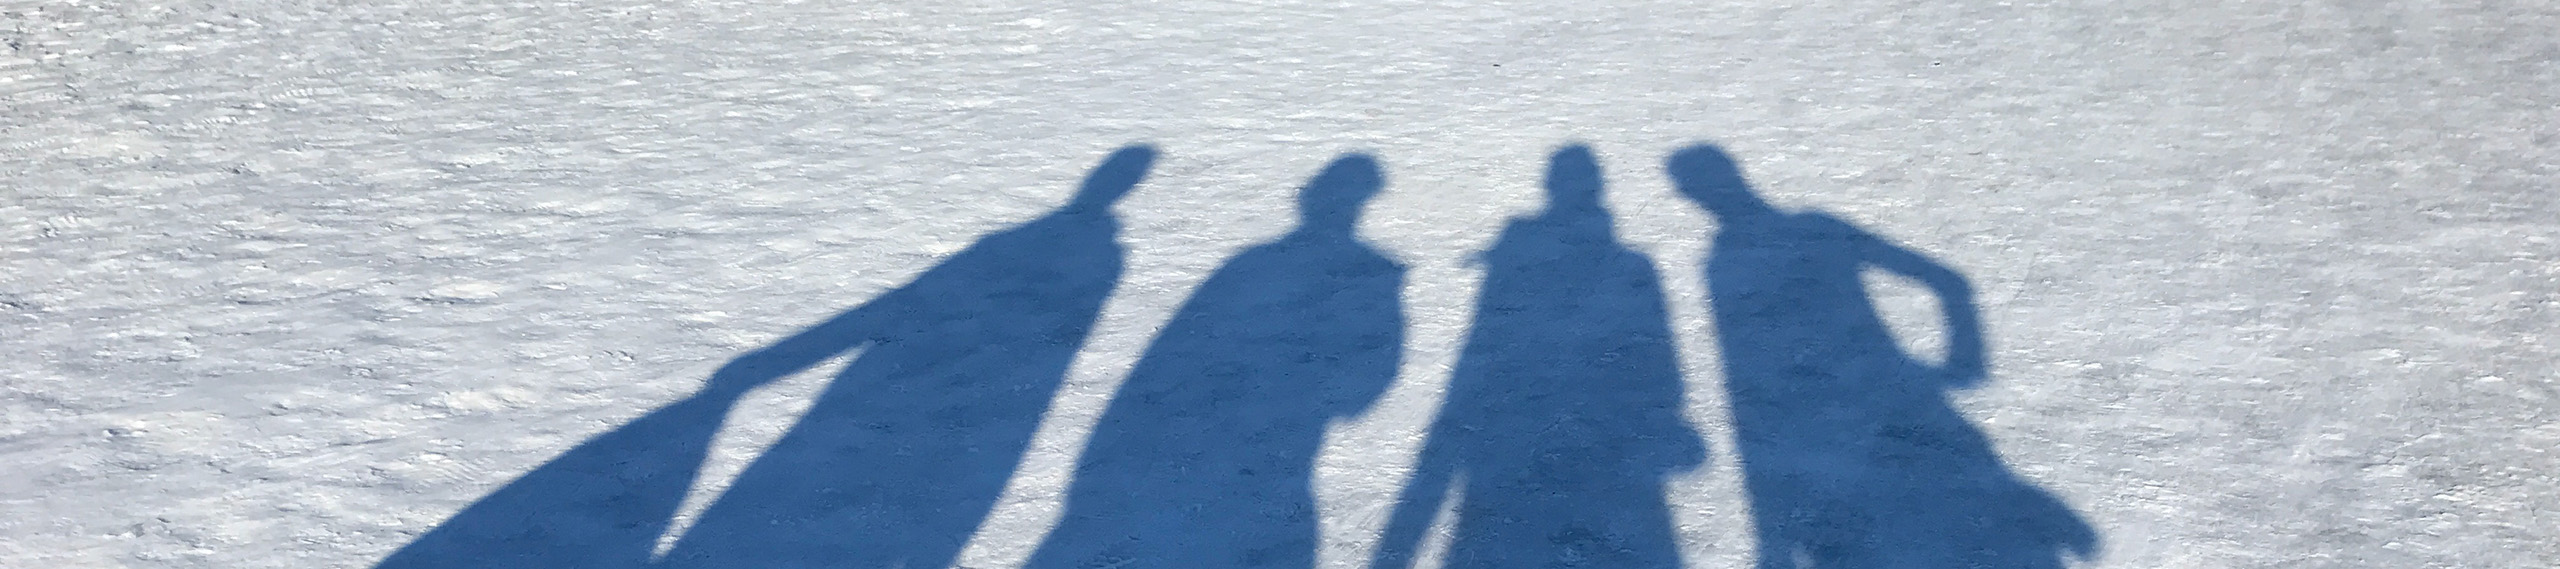 4 shadows of people stretched out against the snow